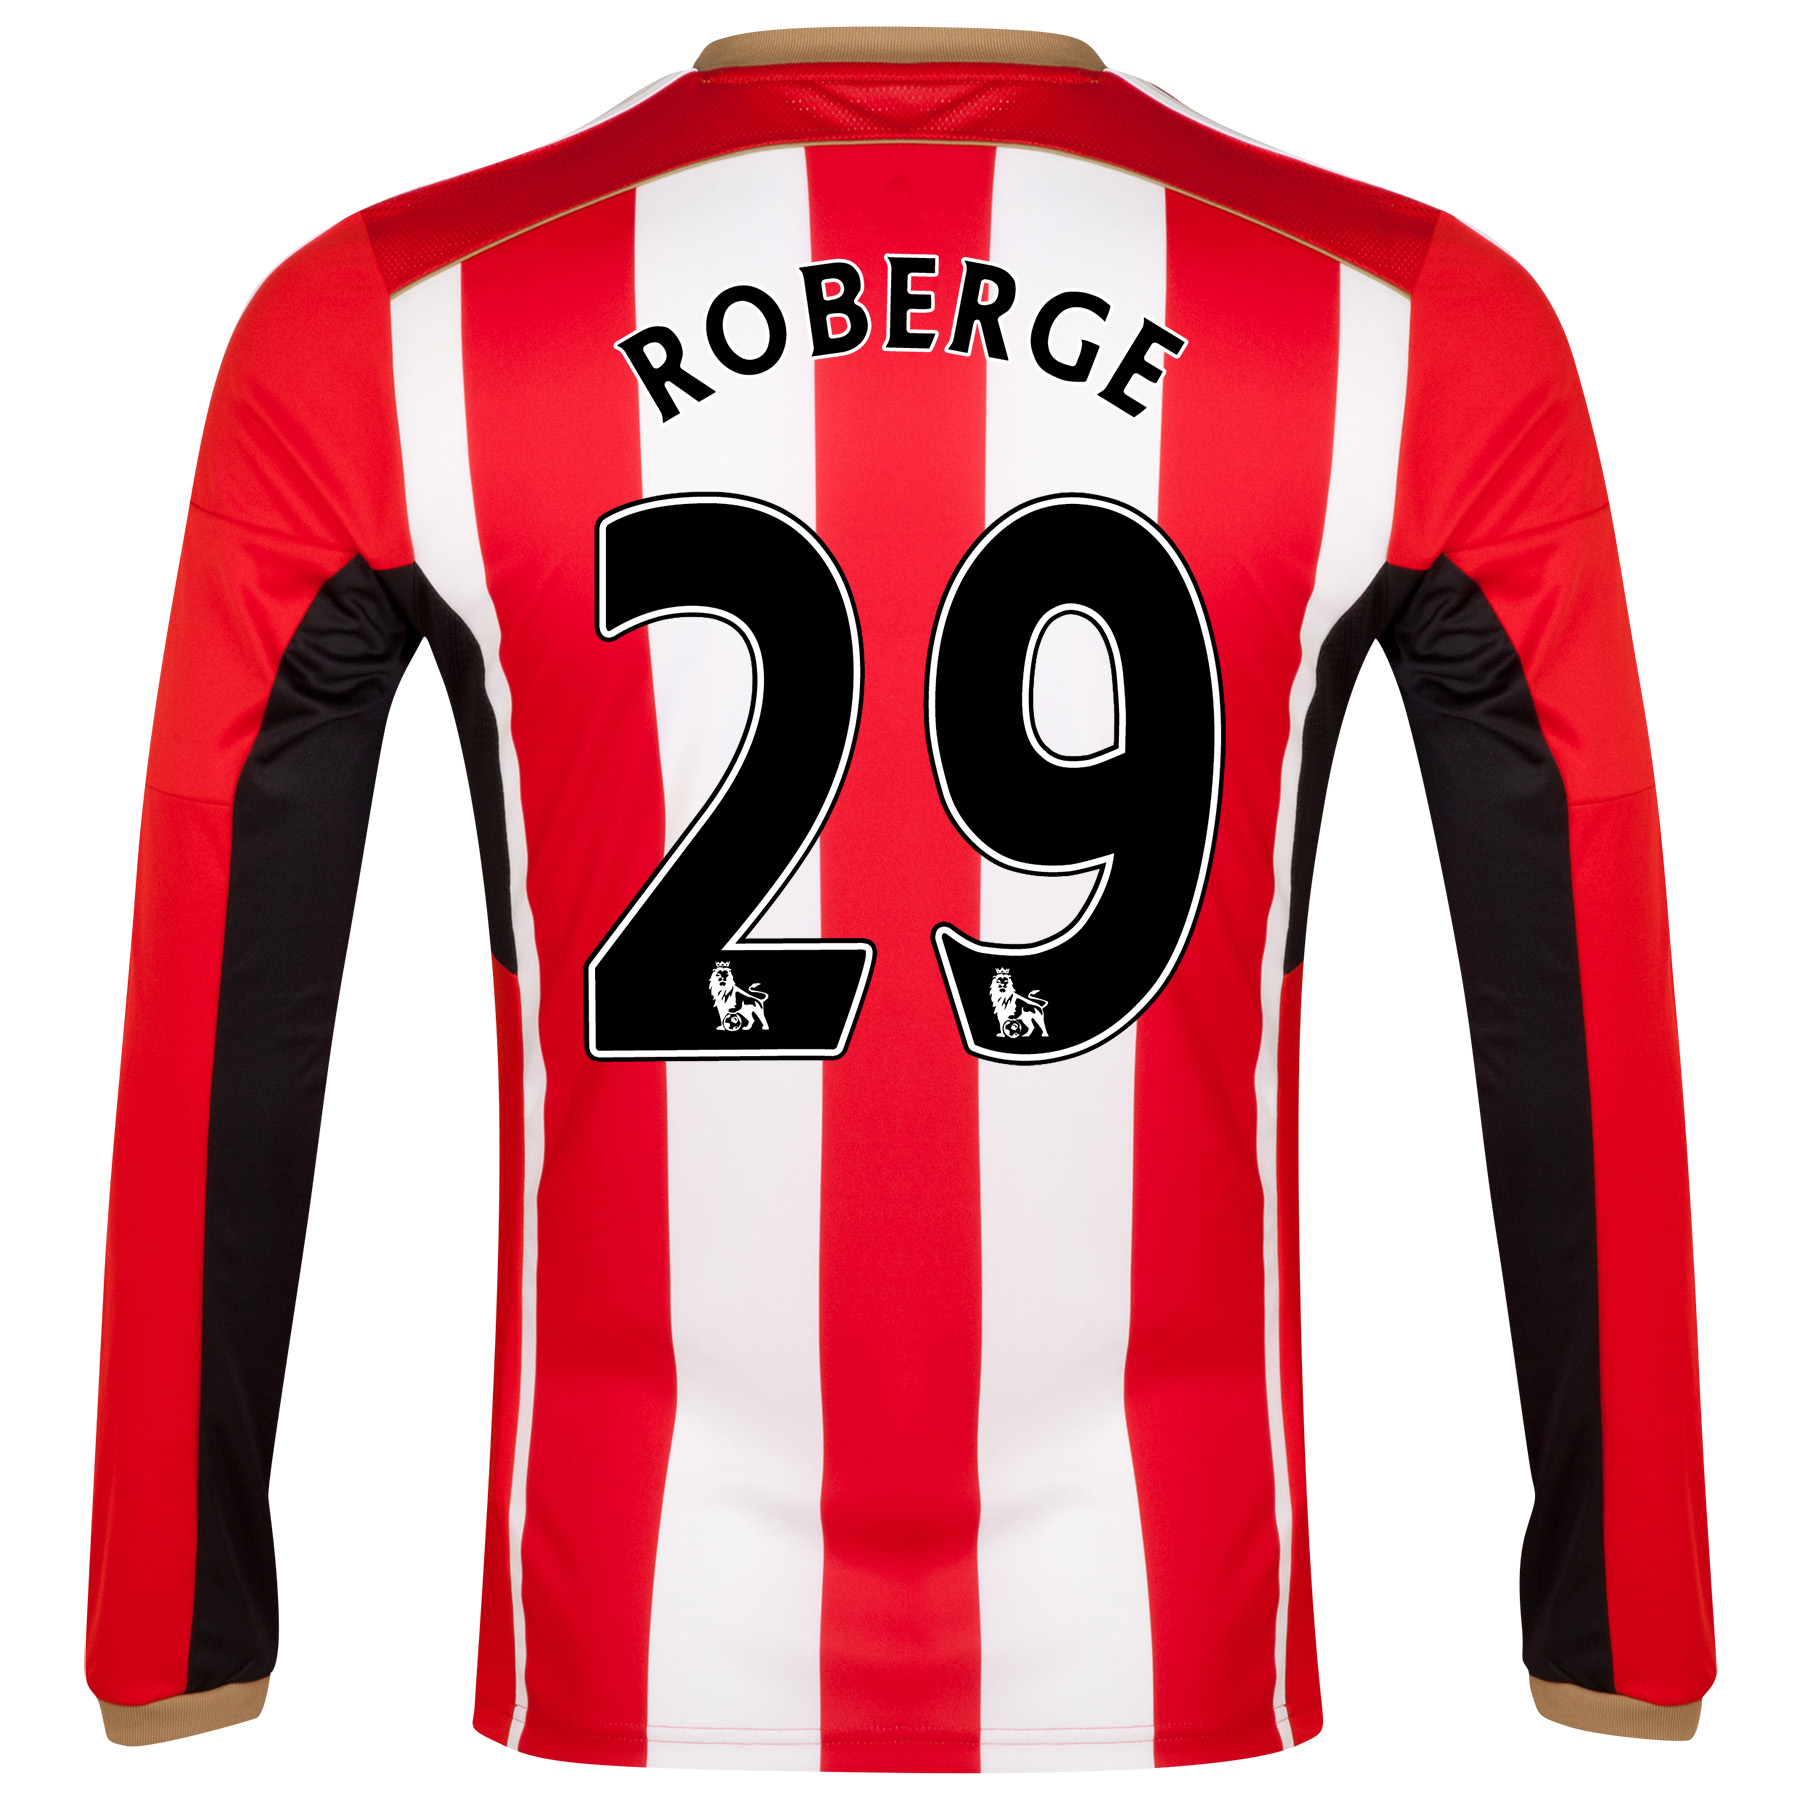 Sunderland Home Shirt 2014/15 - Long Sleeved Red with Roberge 29 printing